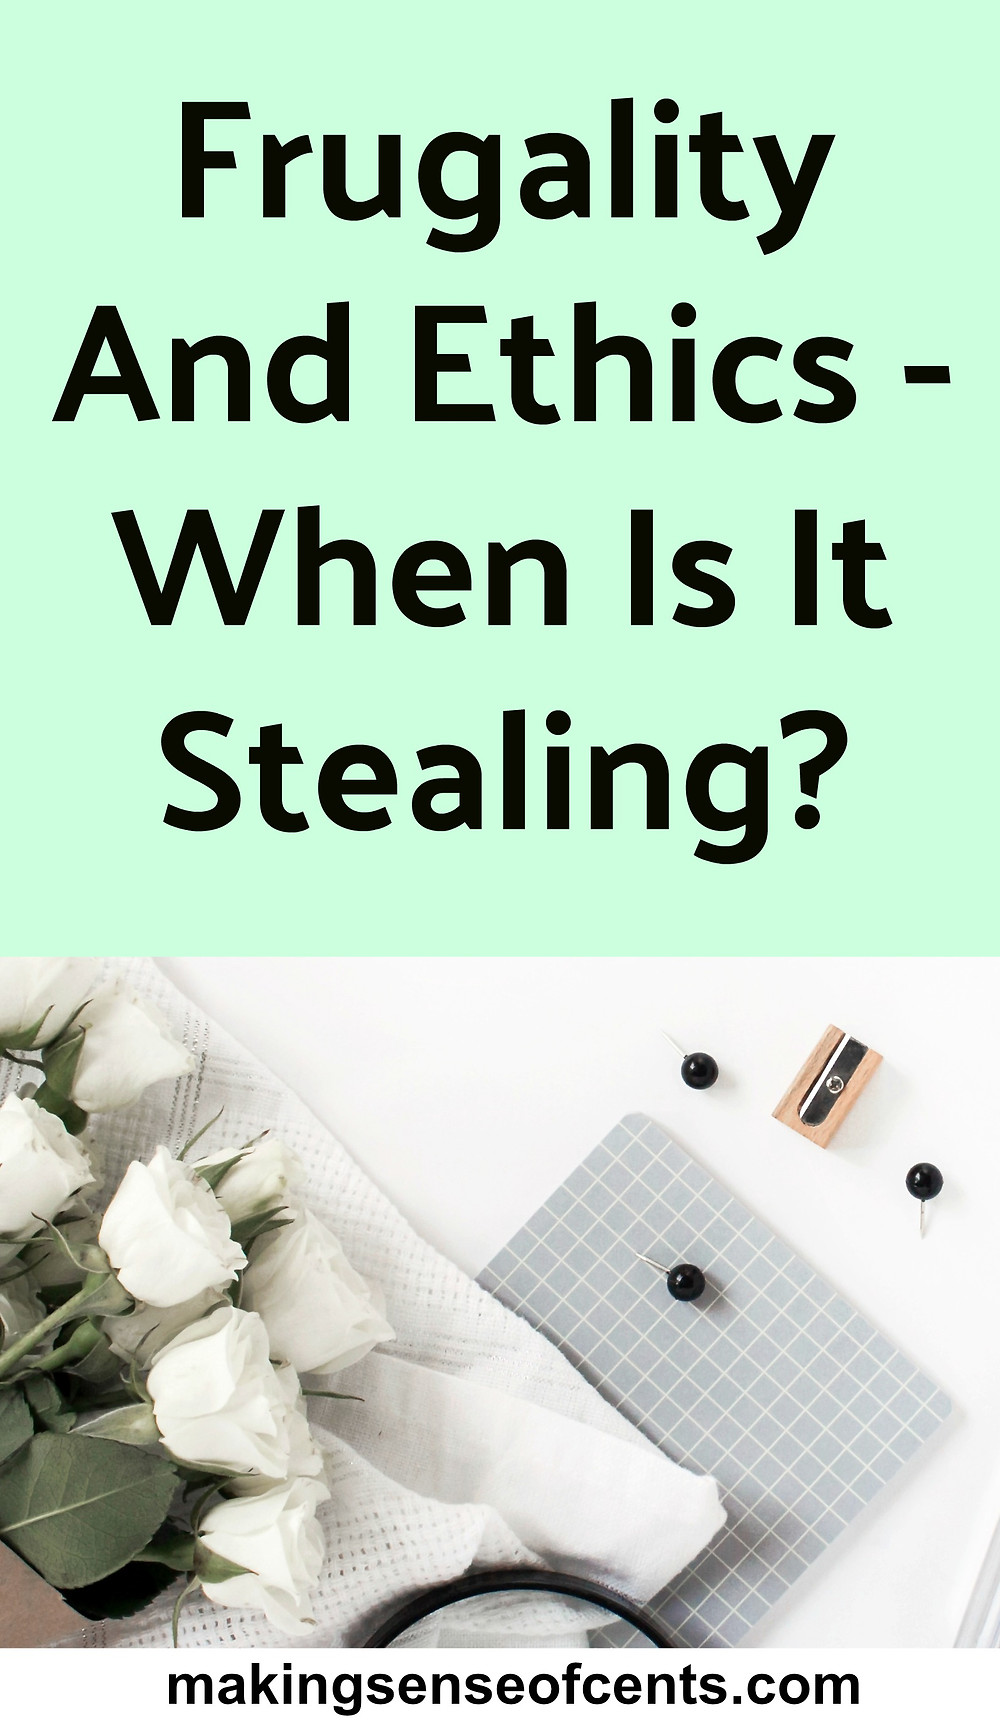 Frugality And Ethics - When Is It Stealing?